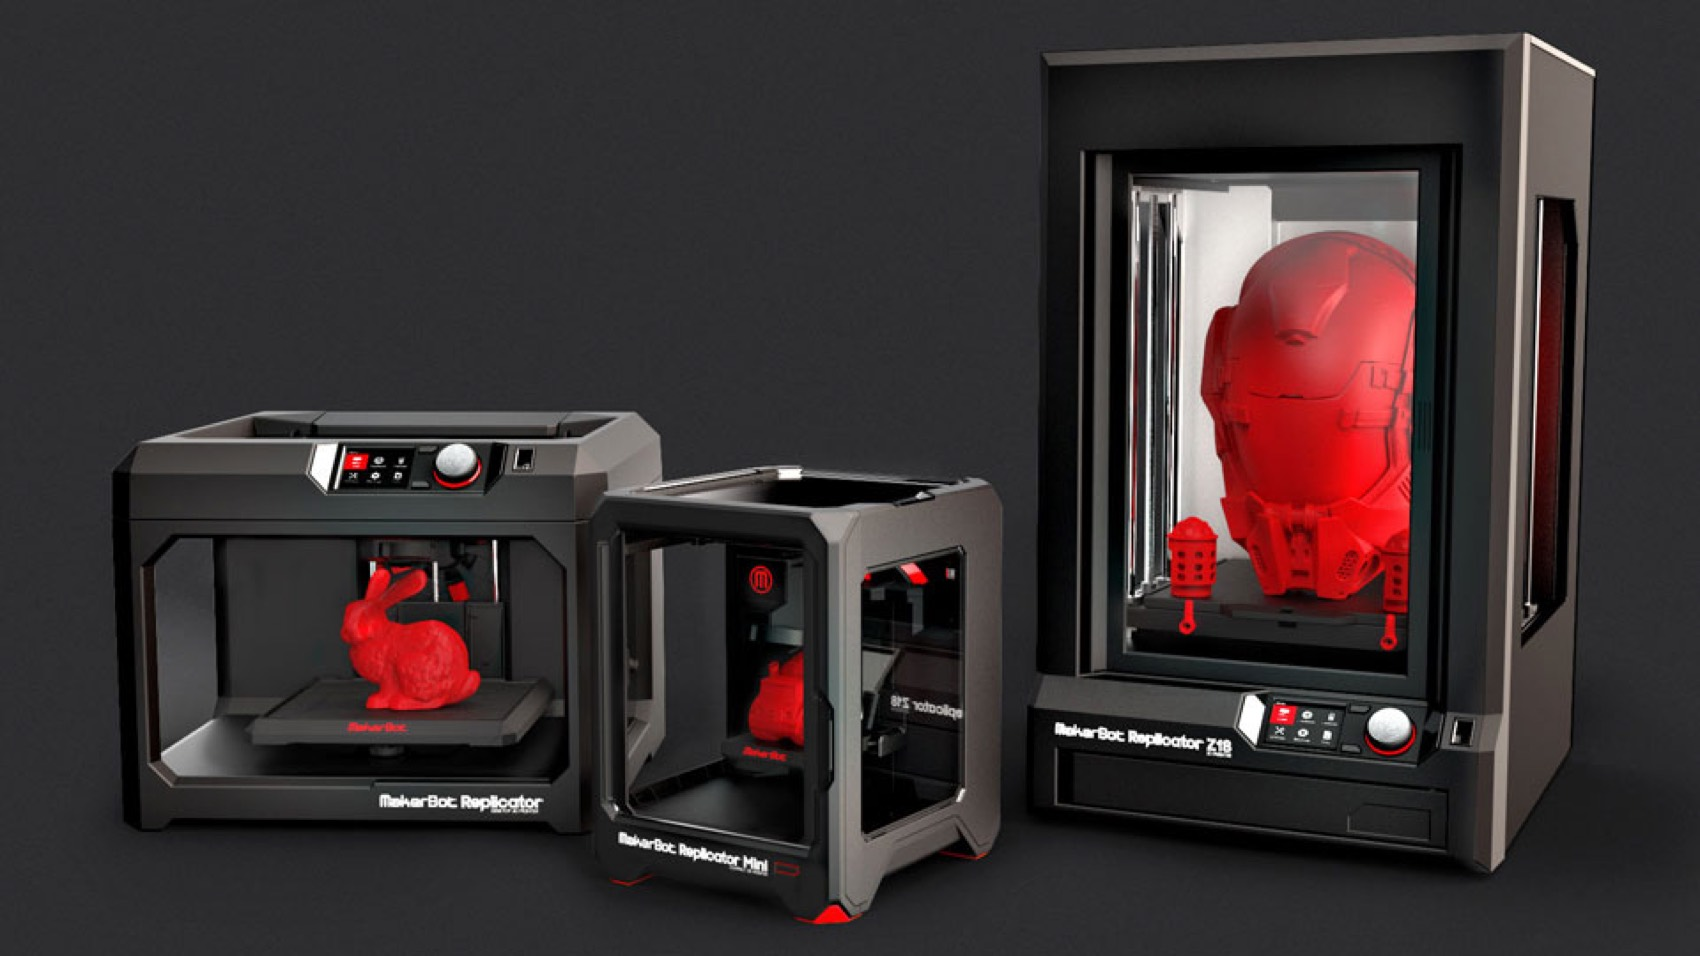 Makerboth-5Th-Gen-3D-Printers